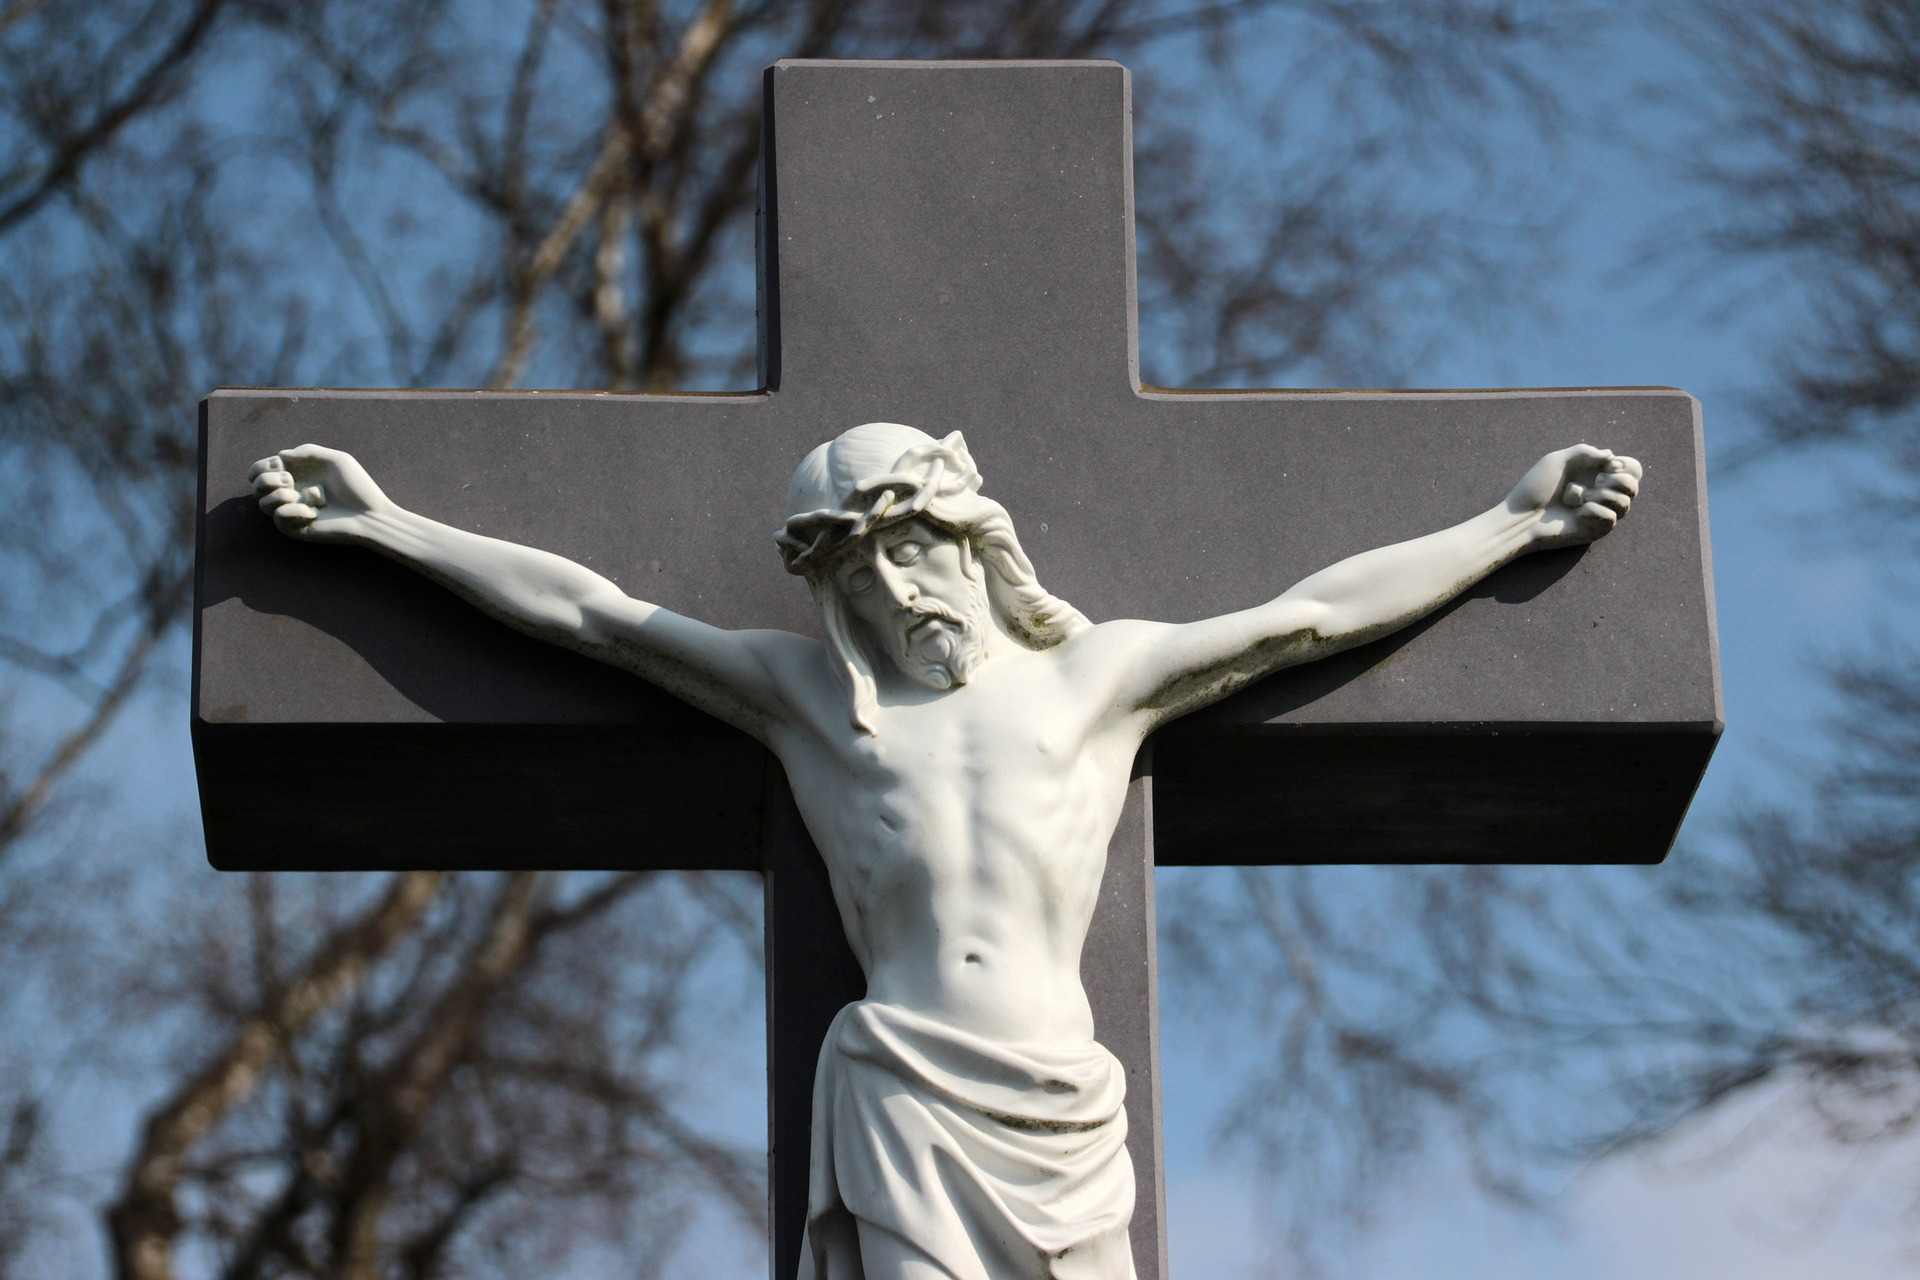 3 REASONS JESUS CHRIST DIED FOR YOU